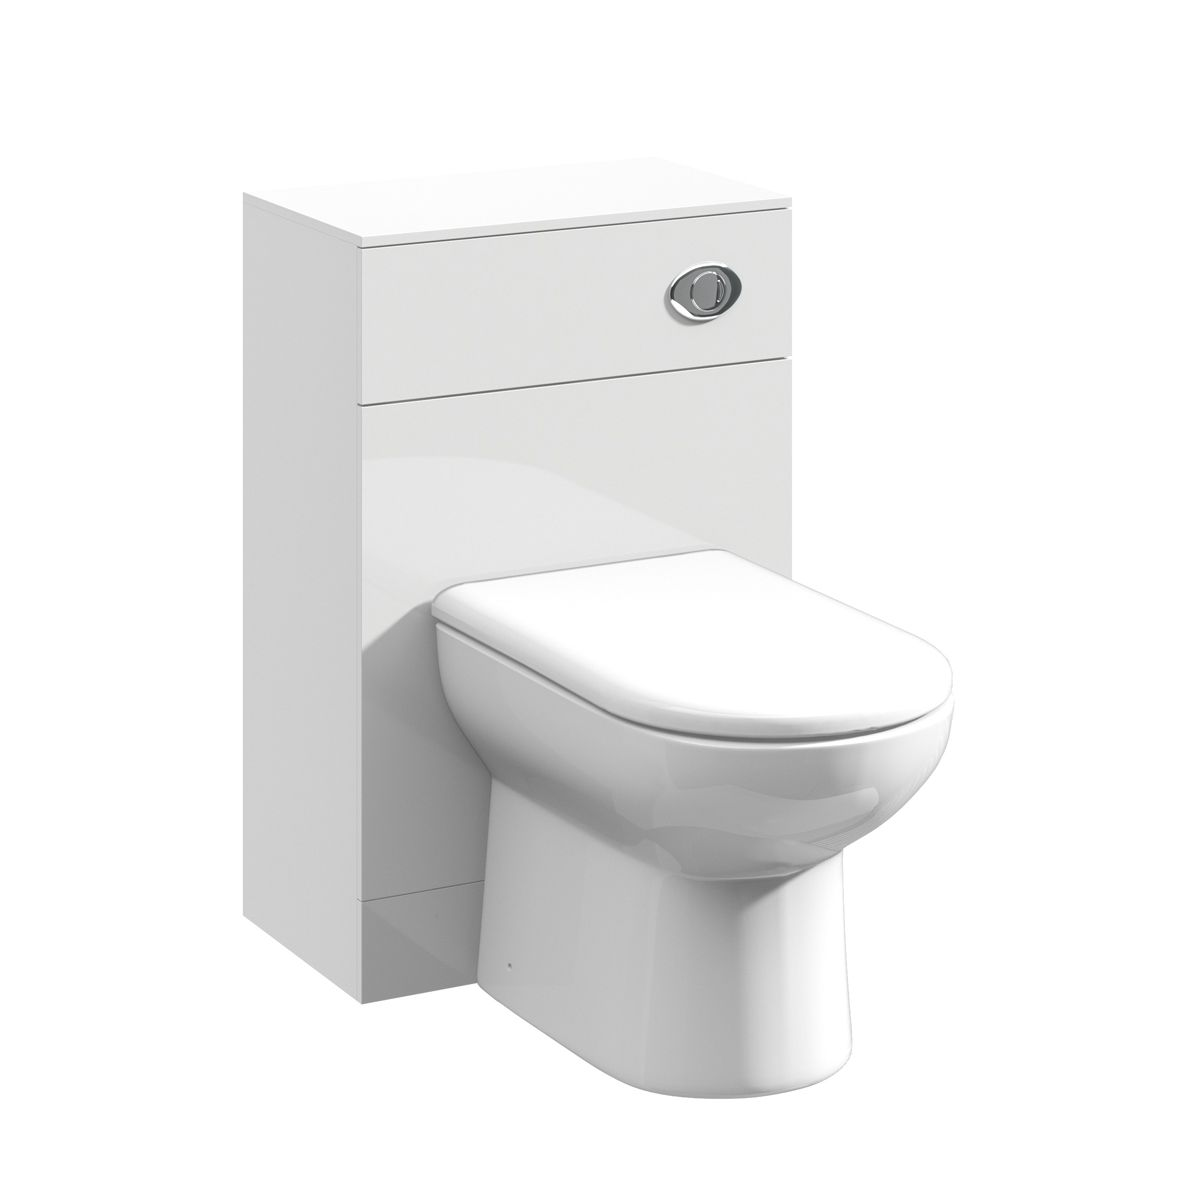 Premier High Gloss White WC Unit with Back to Wall Toilet